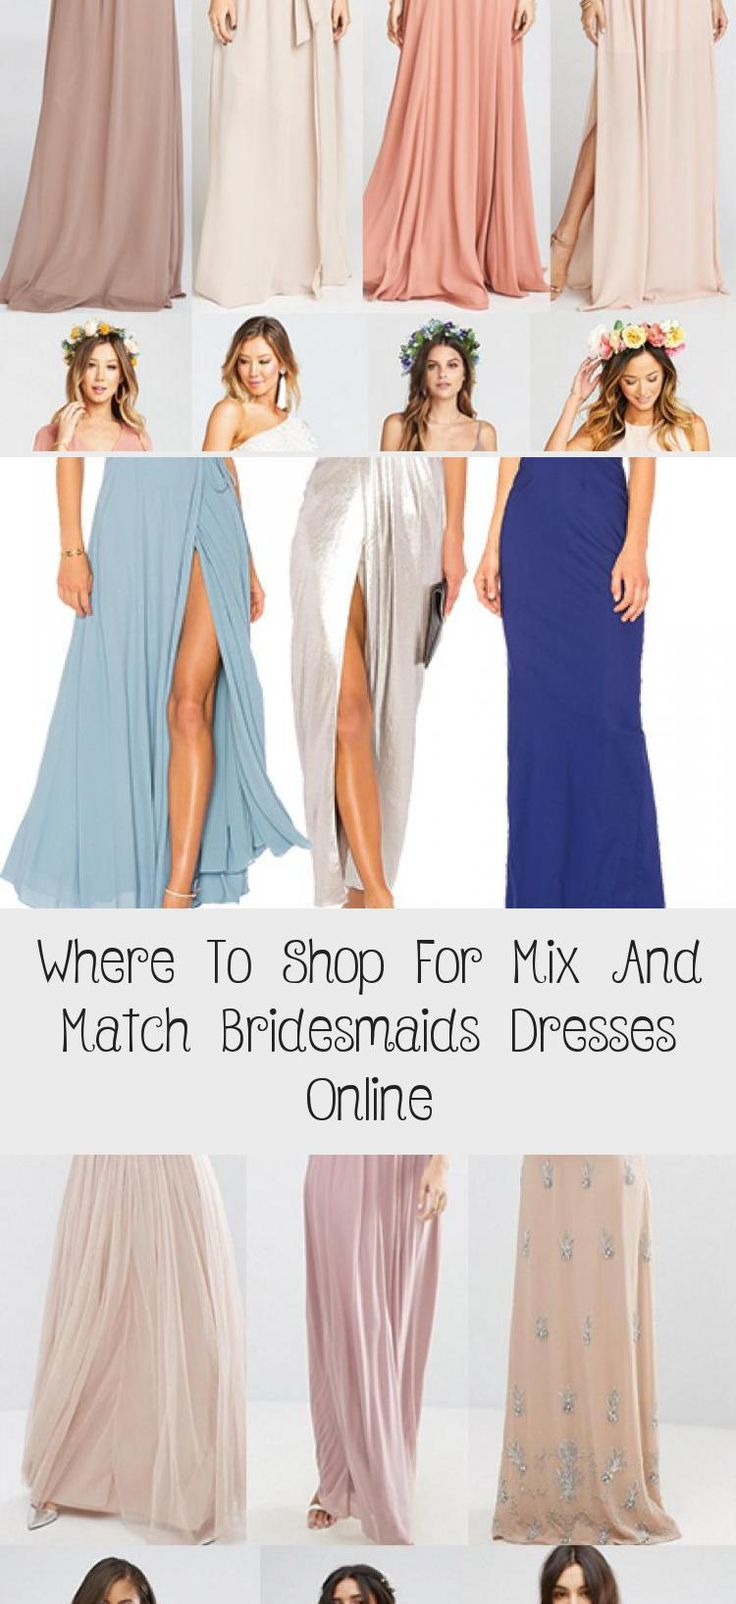 Searching for where to shop for mix and match bridesmaids dresses online? I've listed out my top five shops for gorgeous mix and match bridesmaids dresses for any time of year. Black mix and match bridesmaids dresses. Nude mix and match bridesmaids dresses. Blush mix and match bridesmaids dresses. Blue mix and match br